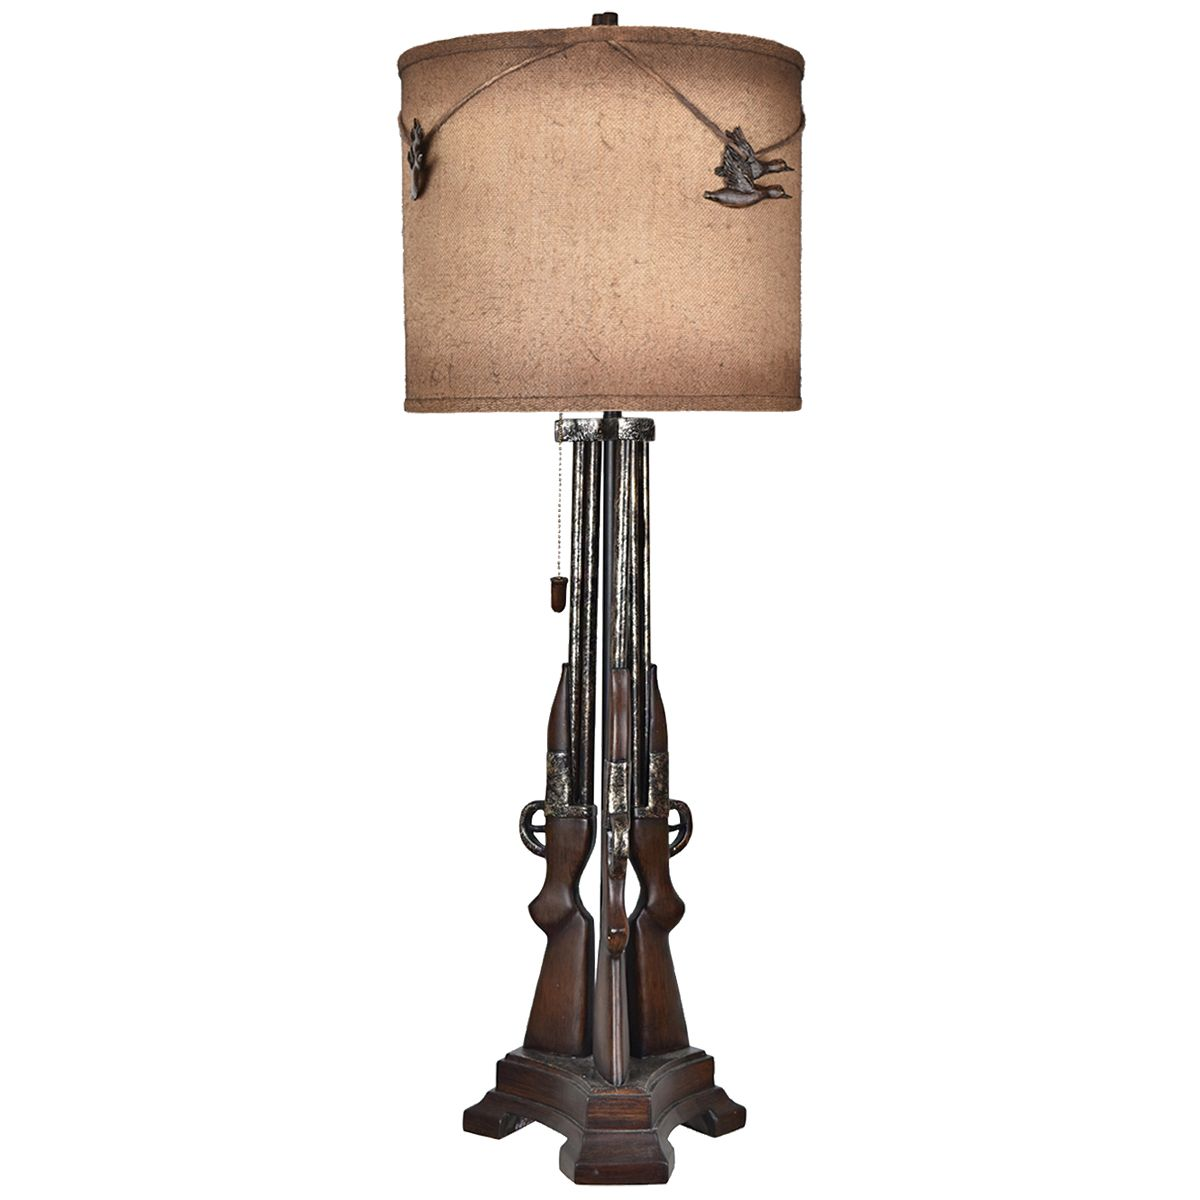 Outlaw Shotgun Table Lamp